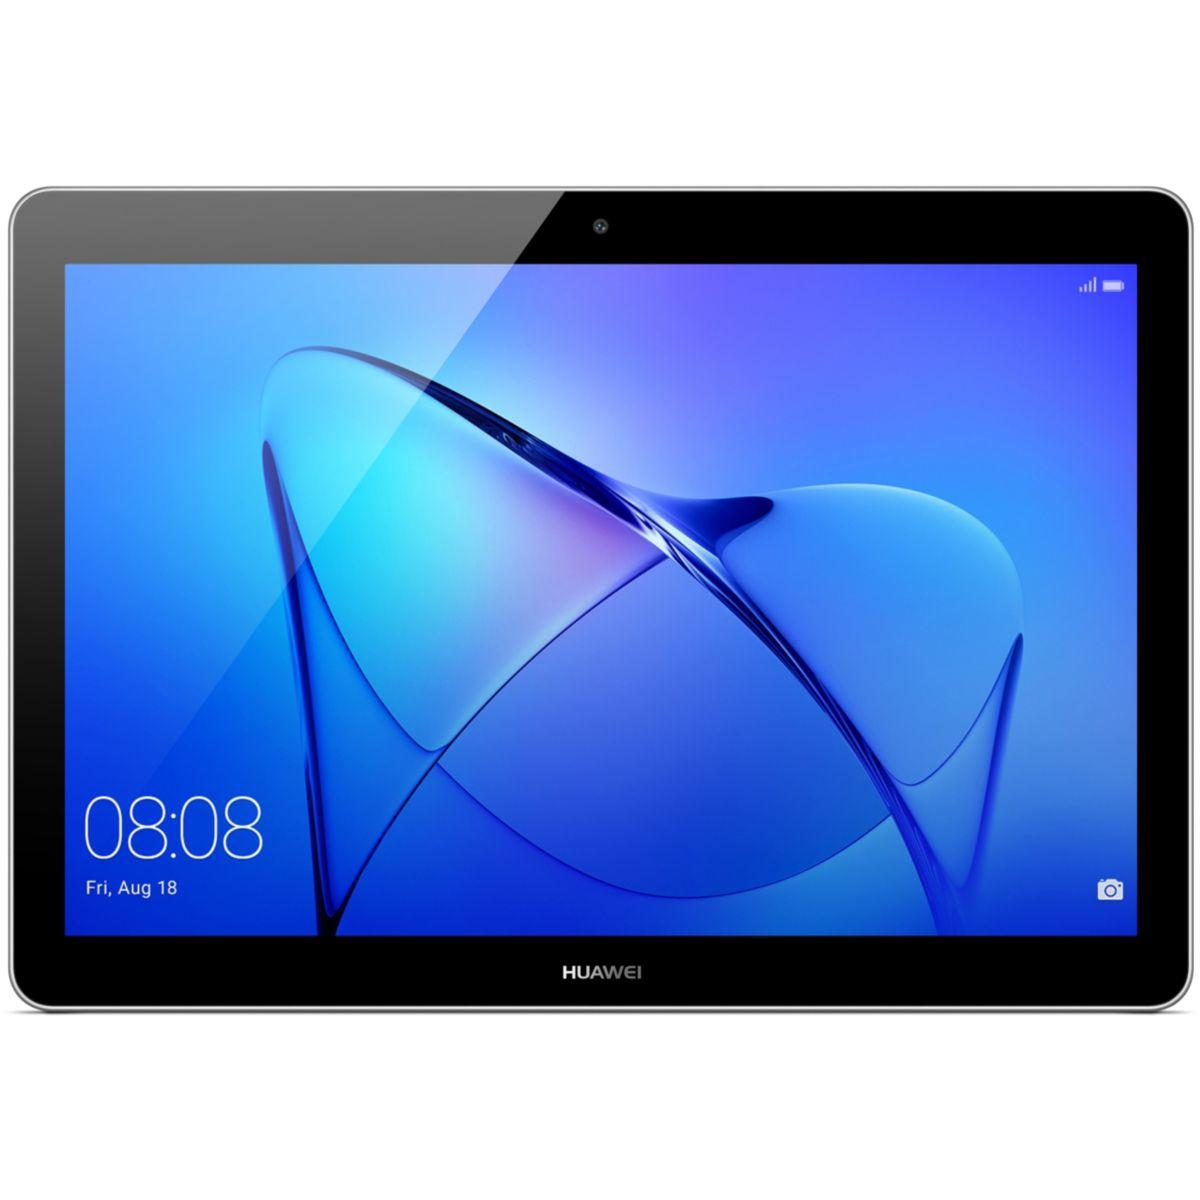 Tablette android huawei t3 10 lte 9,6'' 16go (photo)